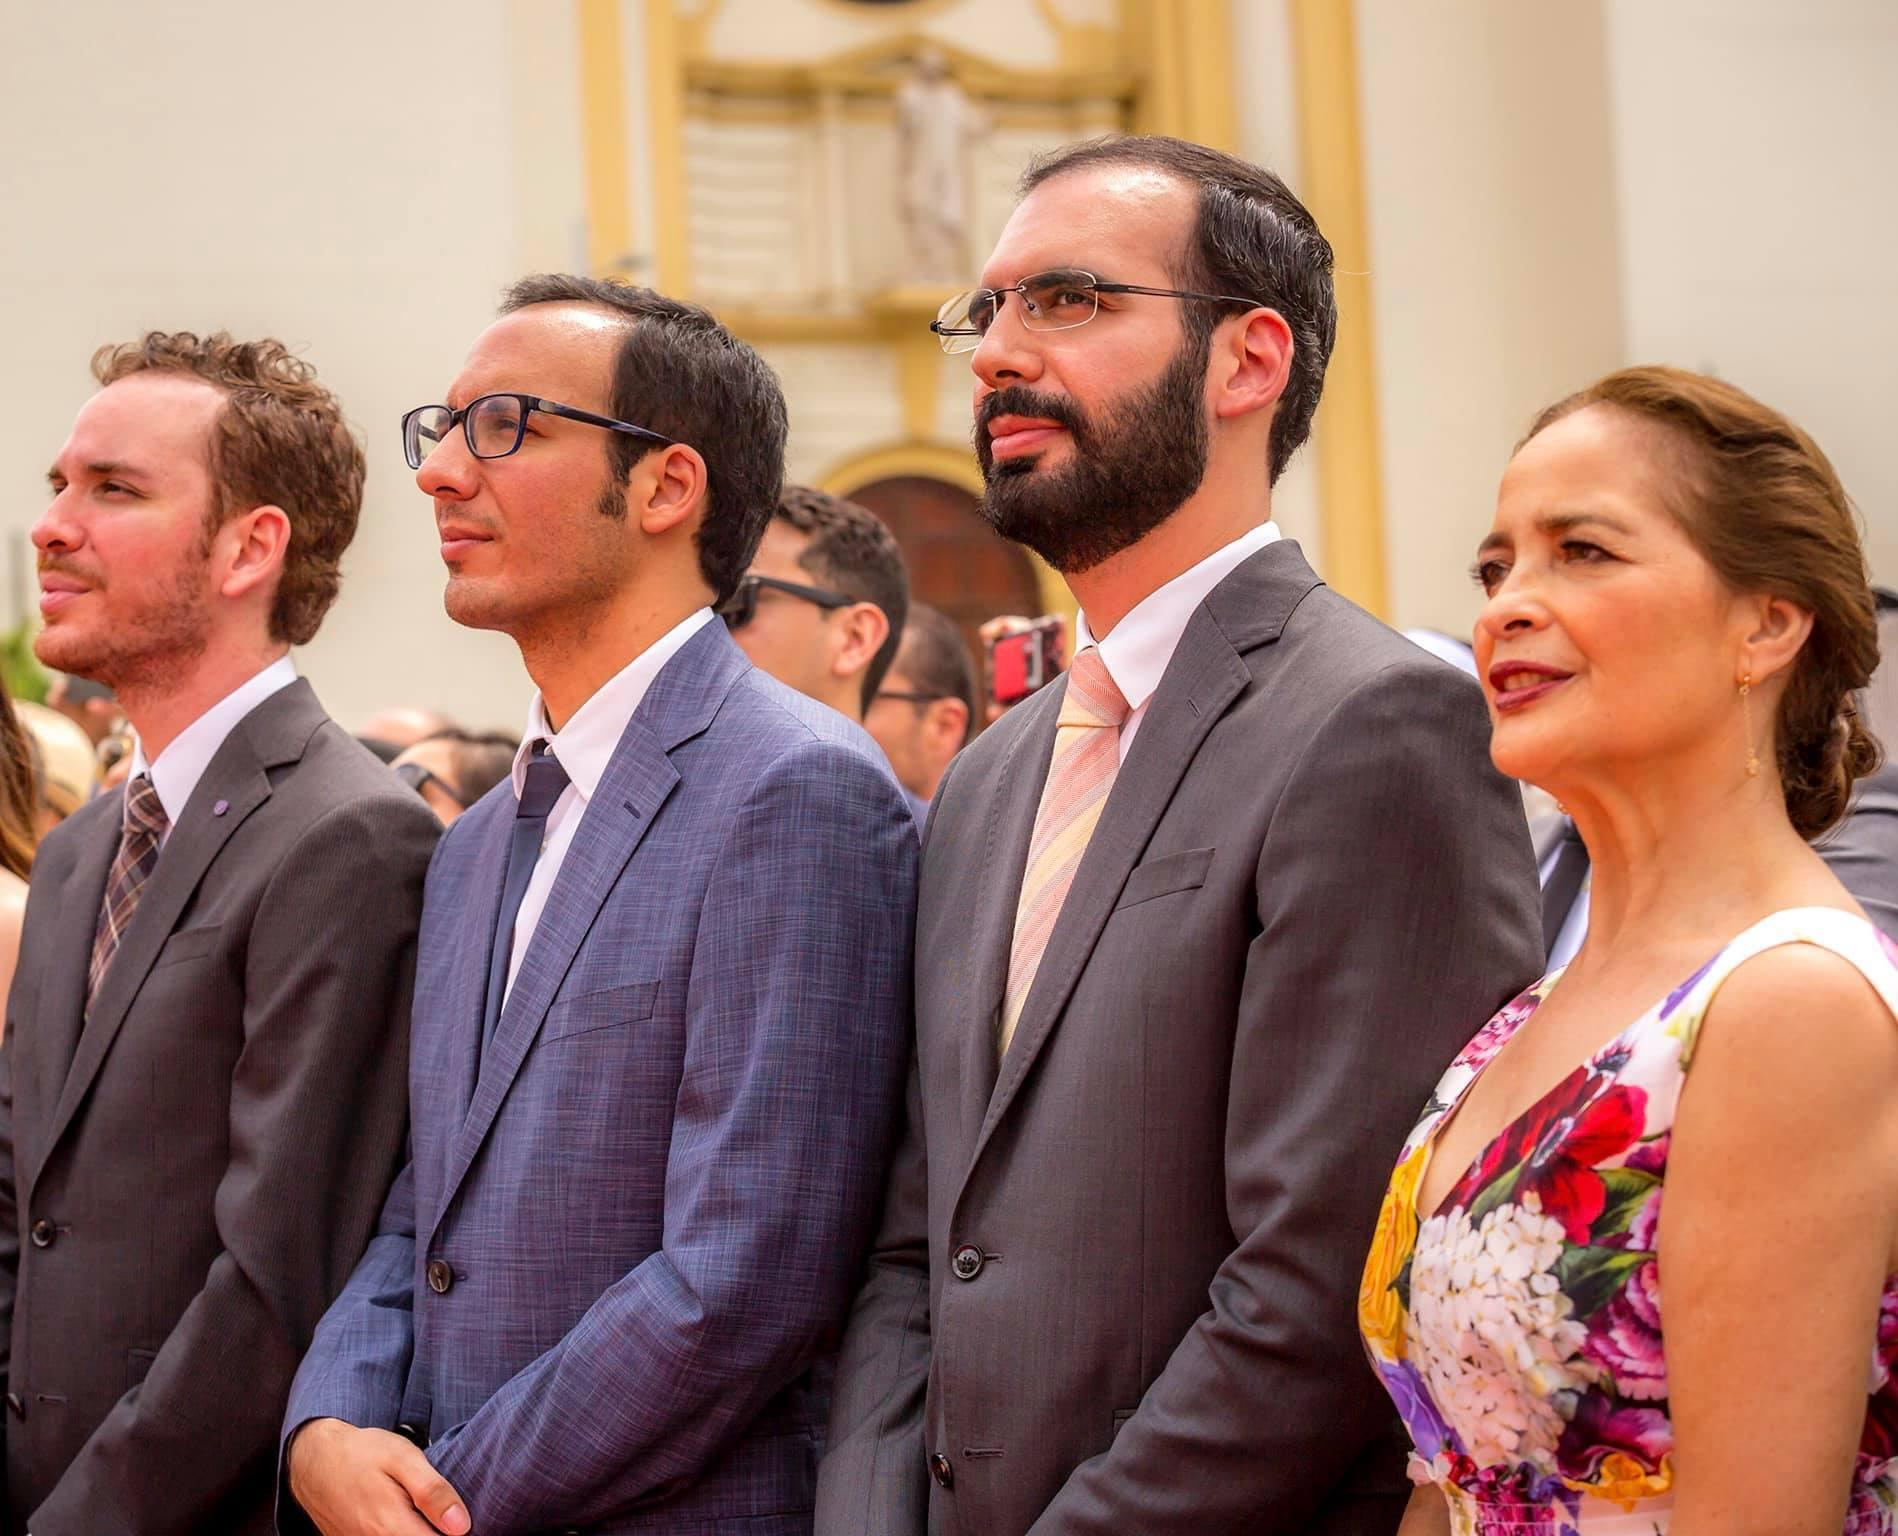 Nayib Bukele's mother, Olga Ortez, and his brothers Karim, Ibrajim and Yusef (from right to left) at the president's inauguration on June 1, 2019. Photo available on Karim Bukele's Facebook page.